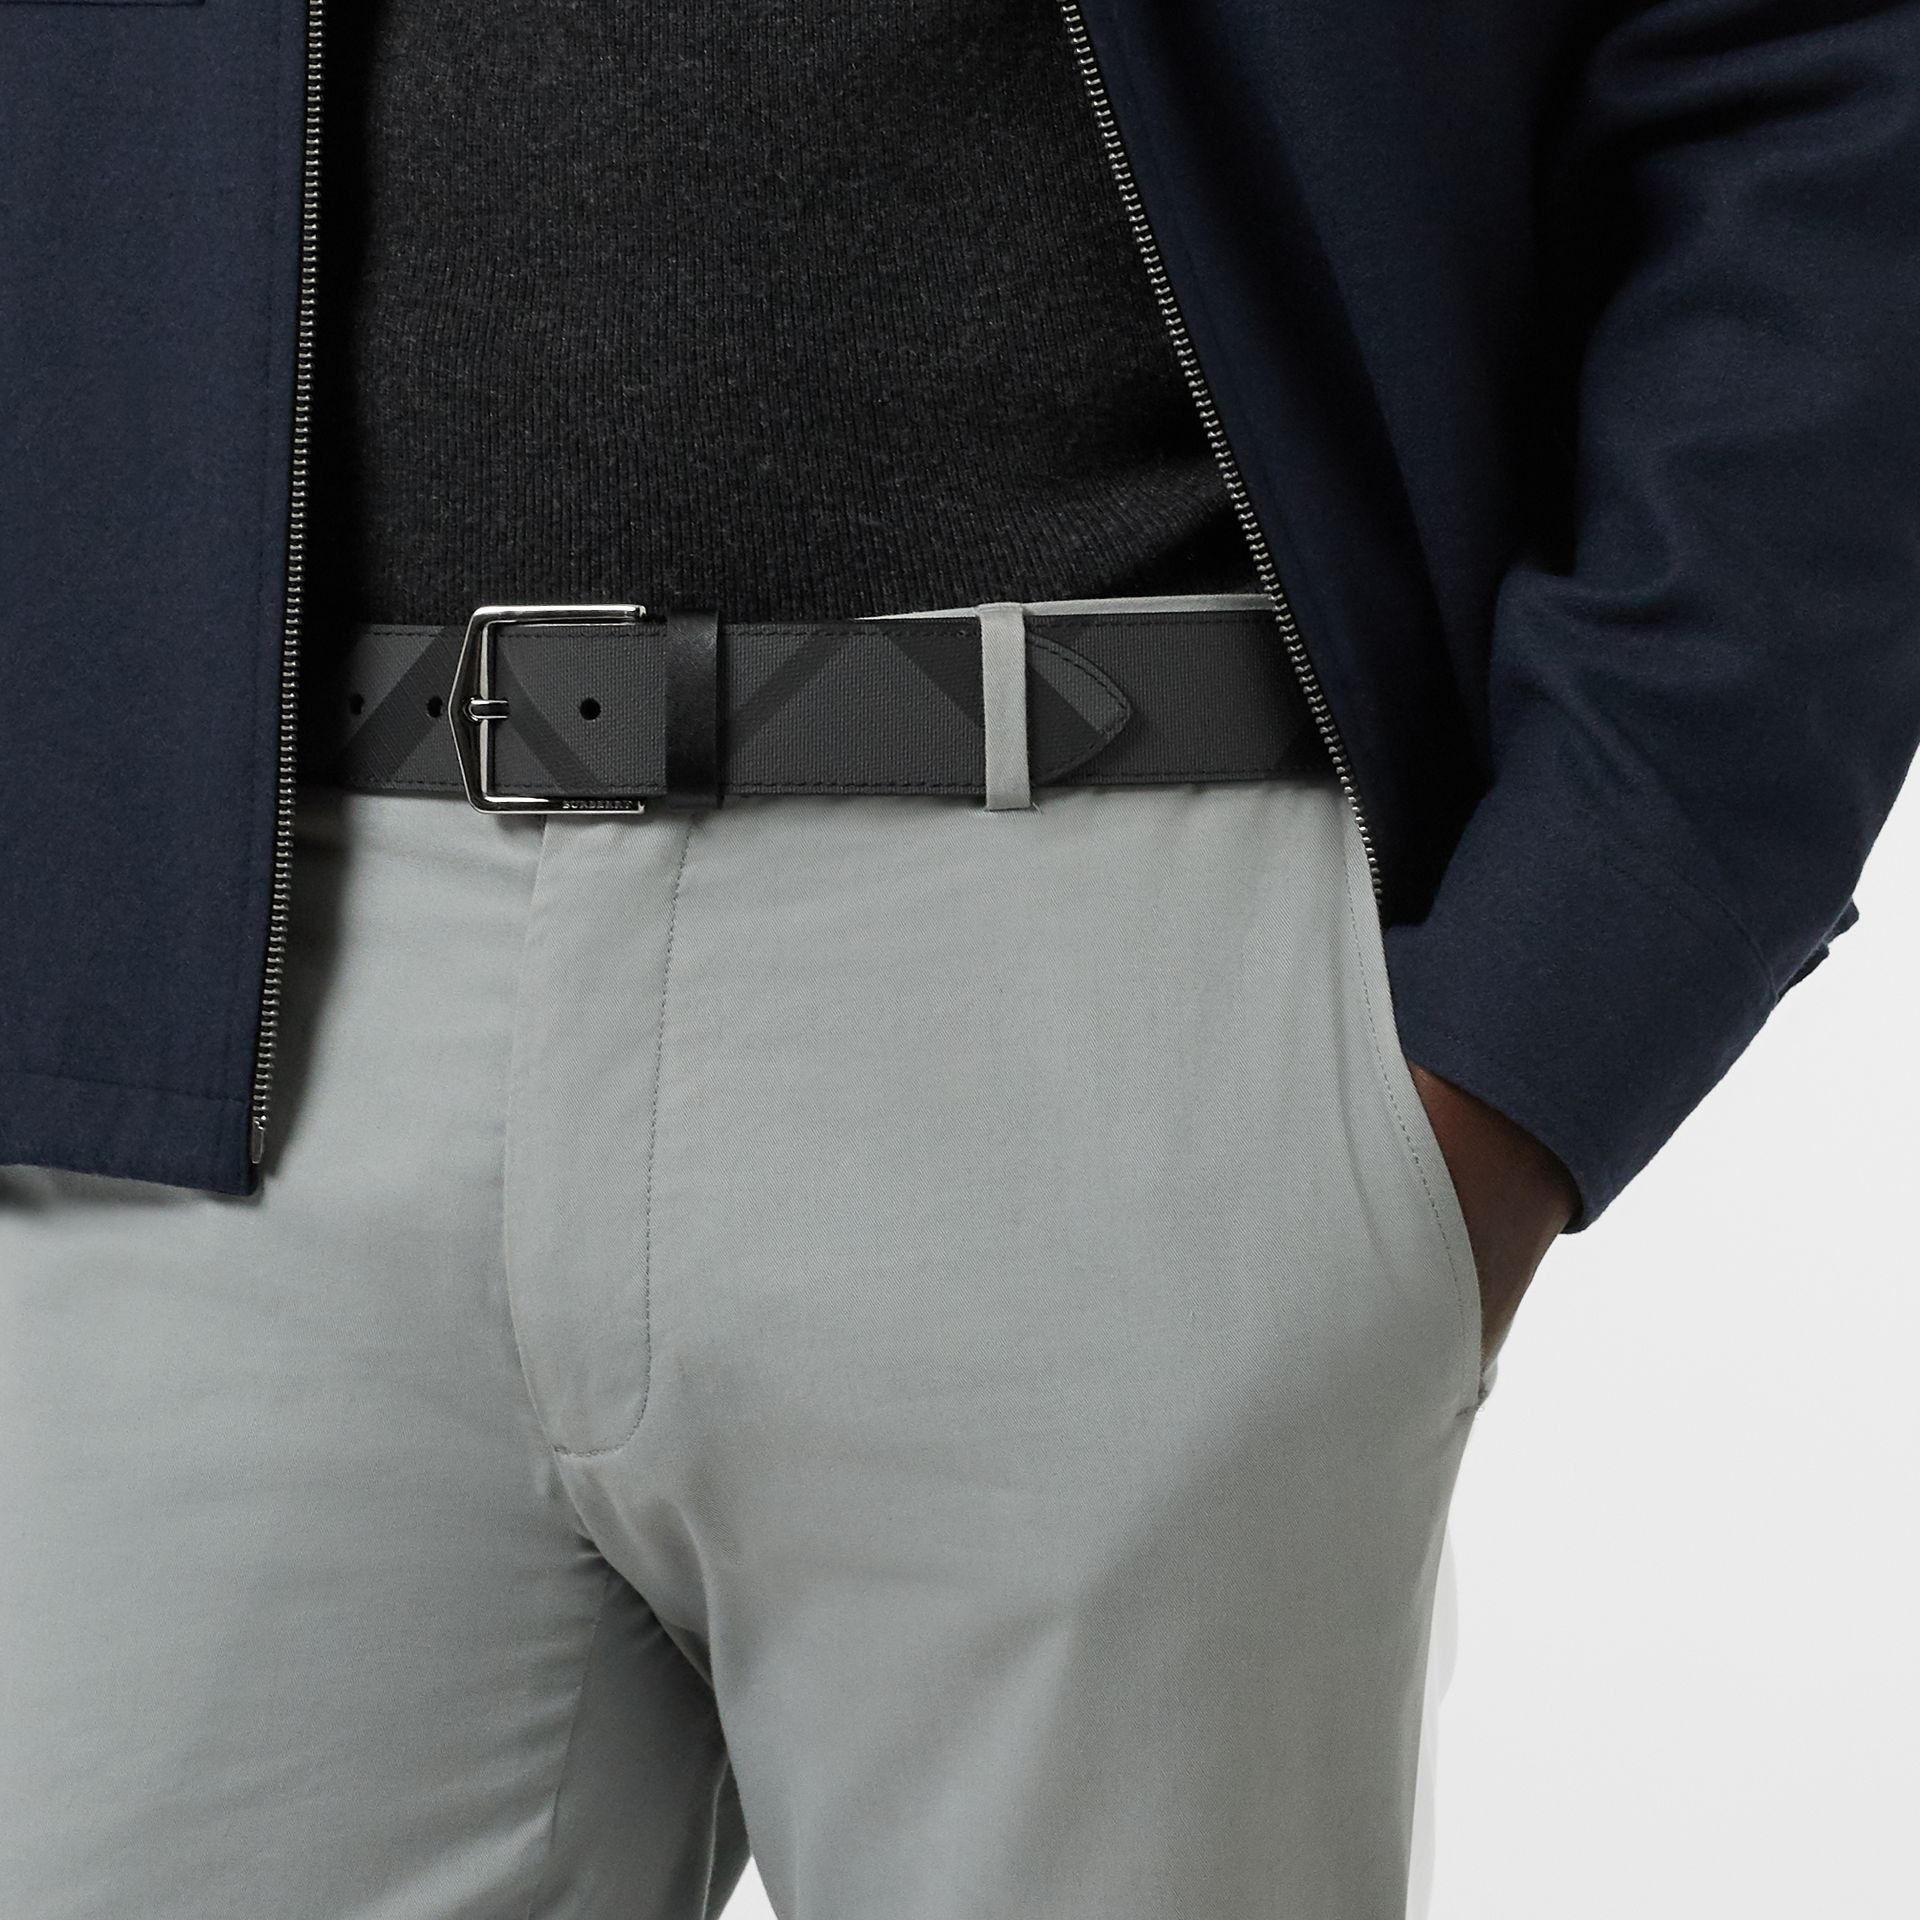 London Check Belt in Charcoal/black - Men | Burberry - gallery image 2